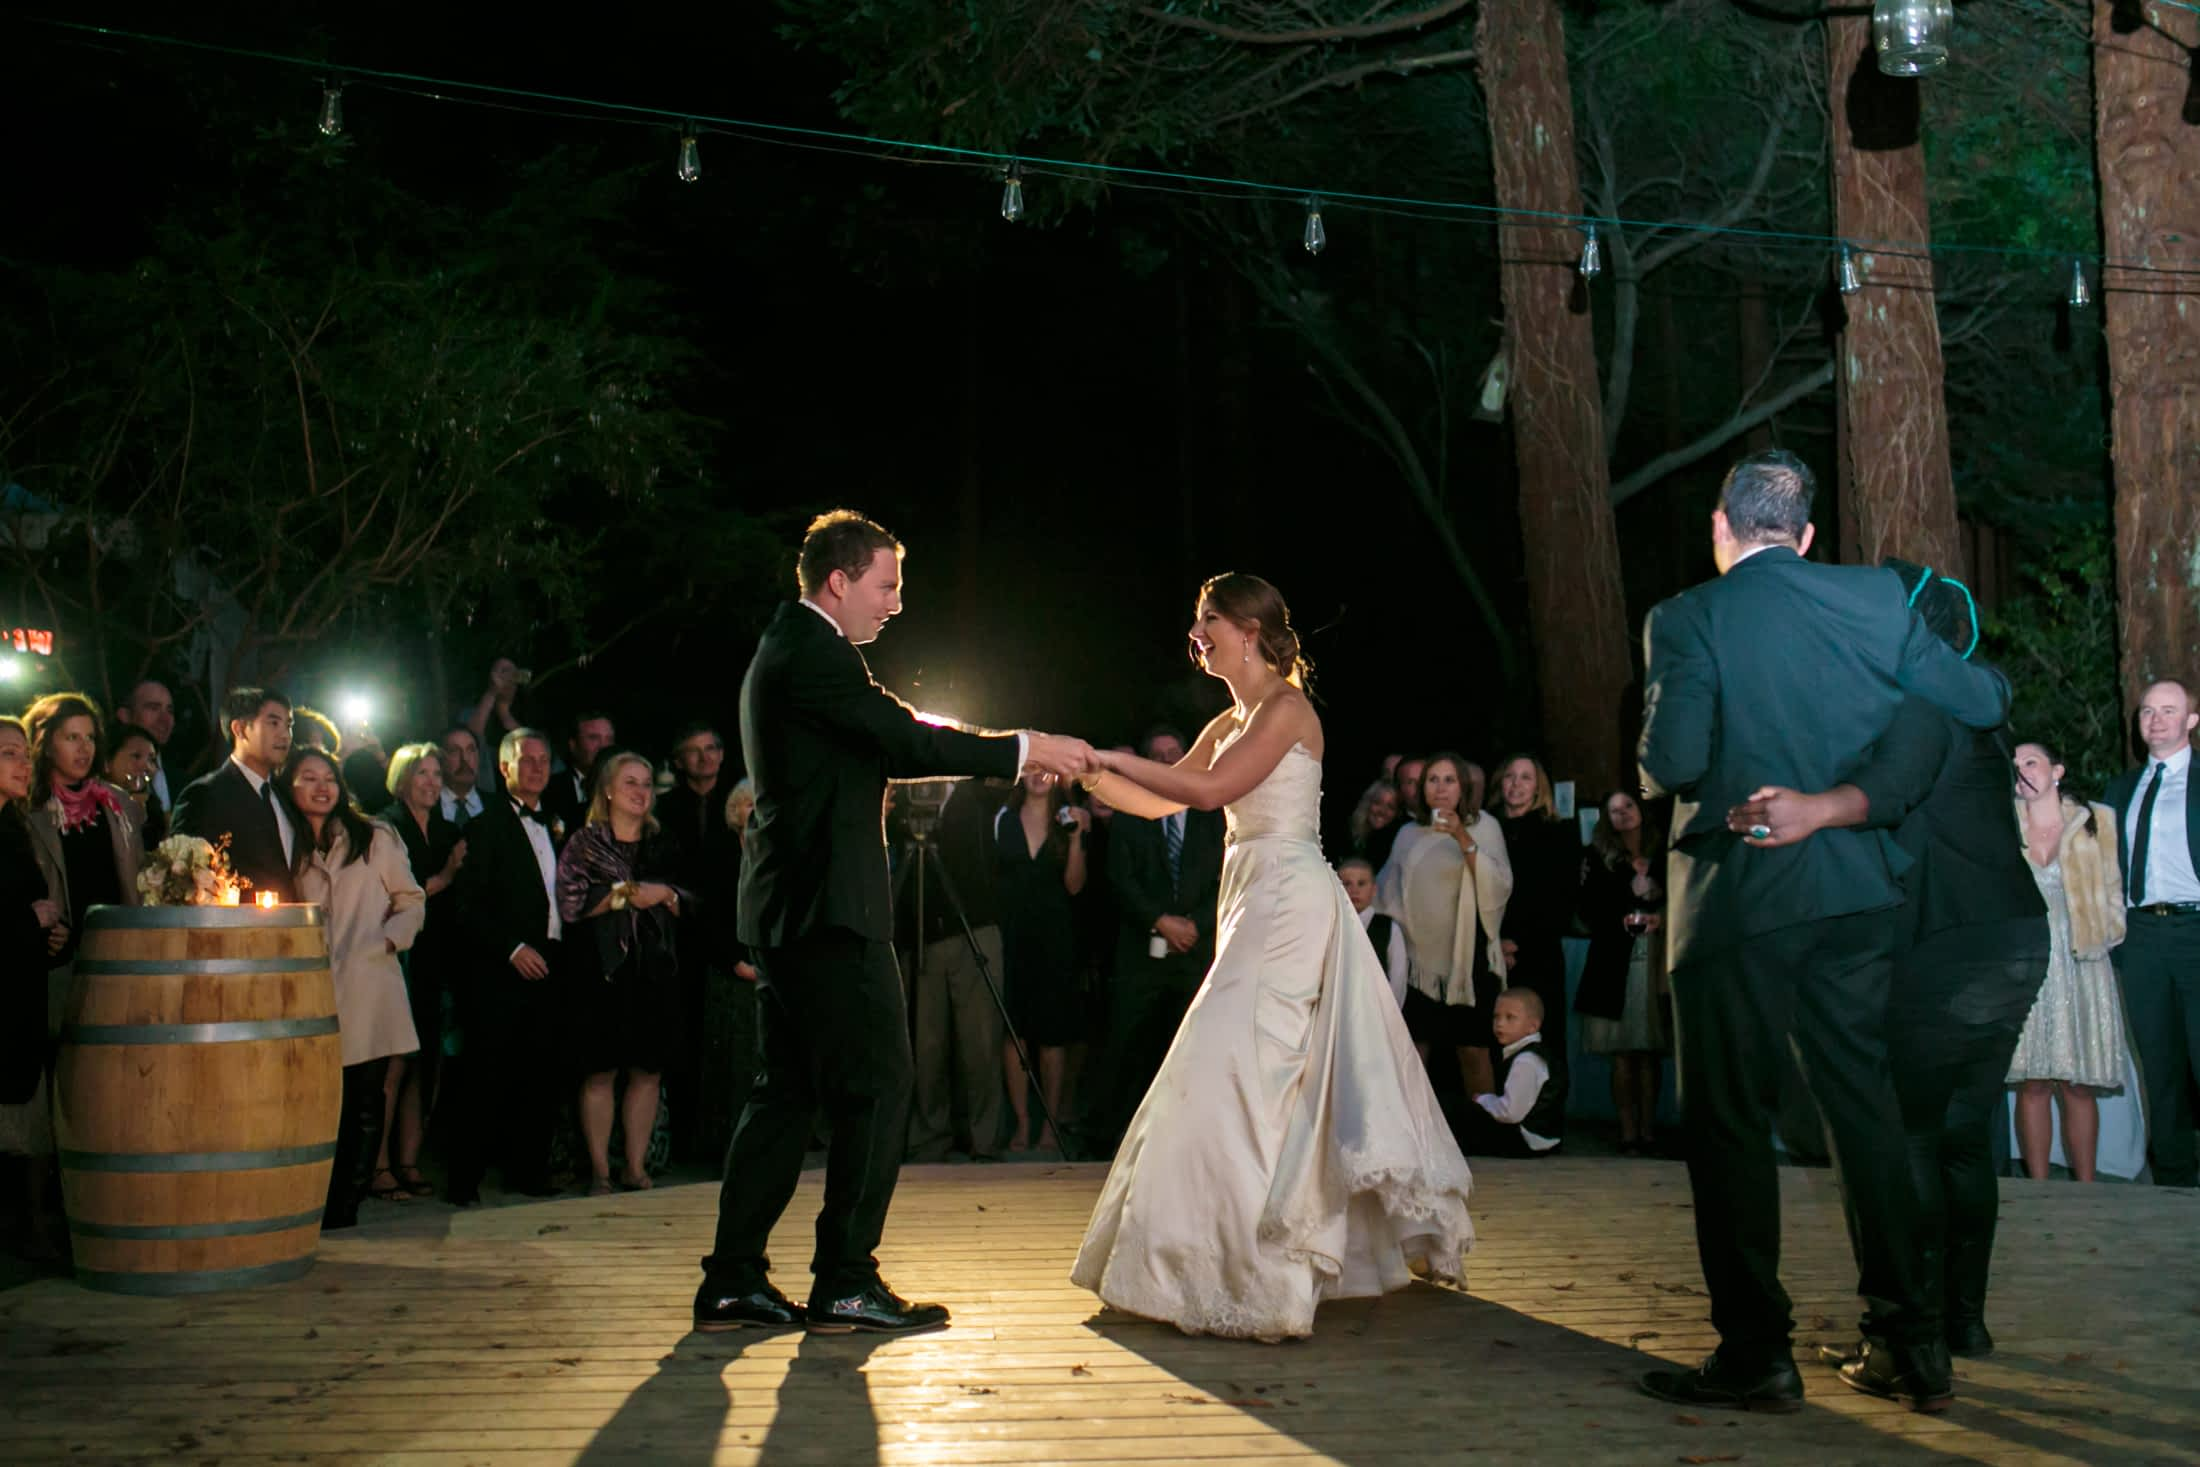 The bride and groom facing each other holding hands while dancing.